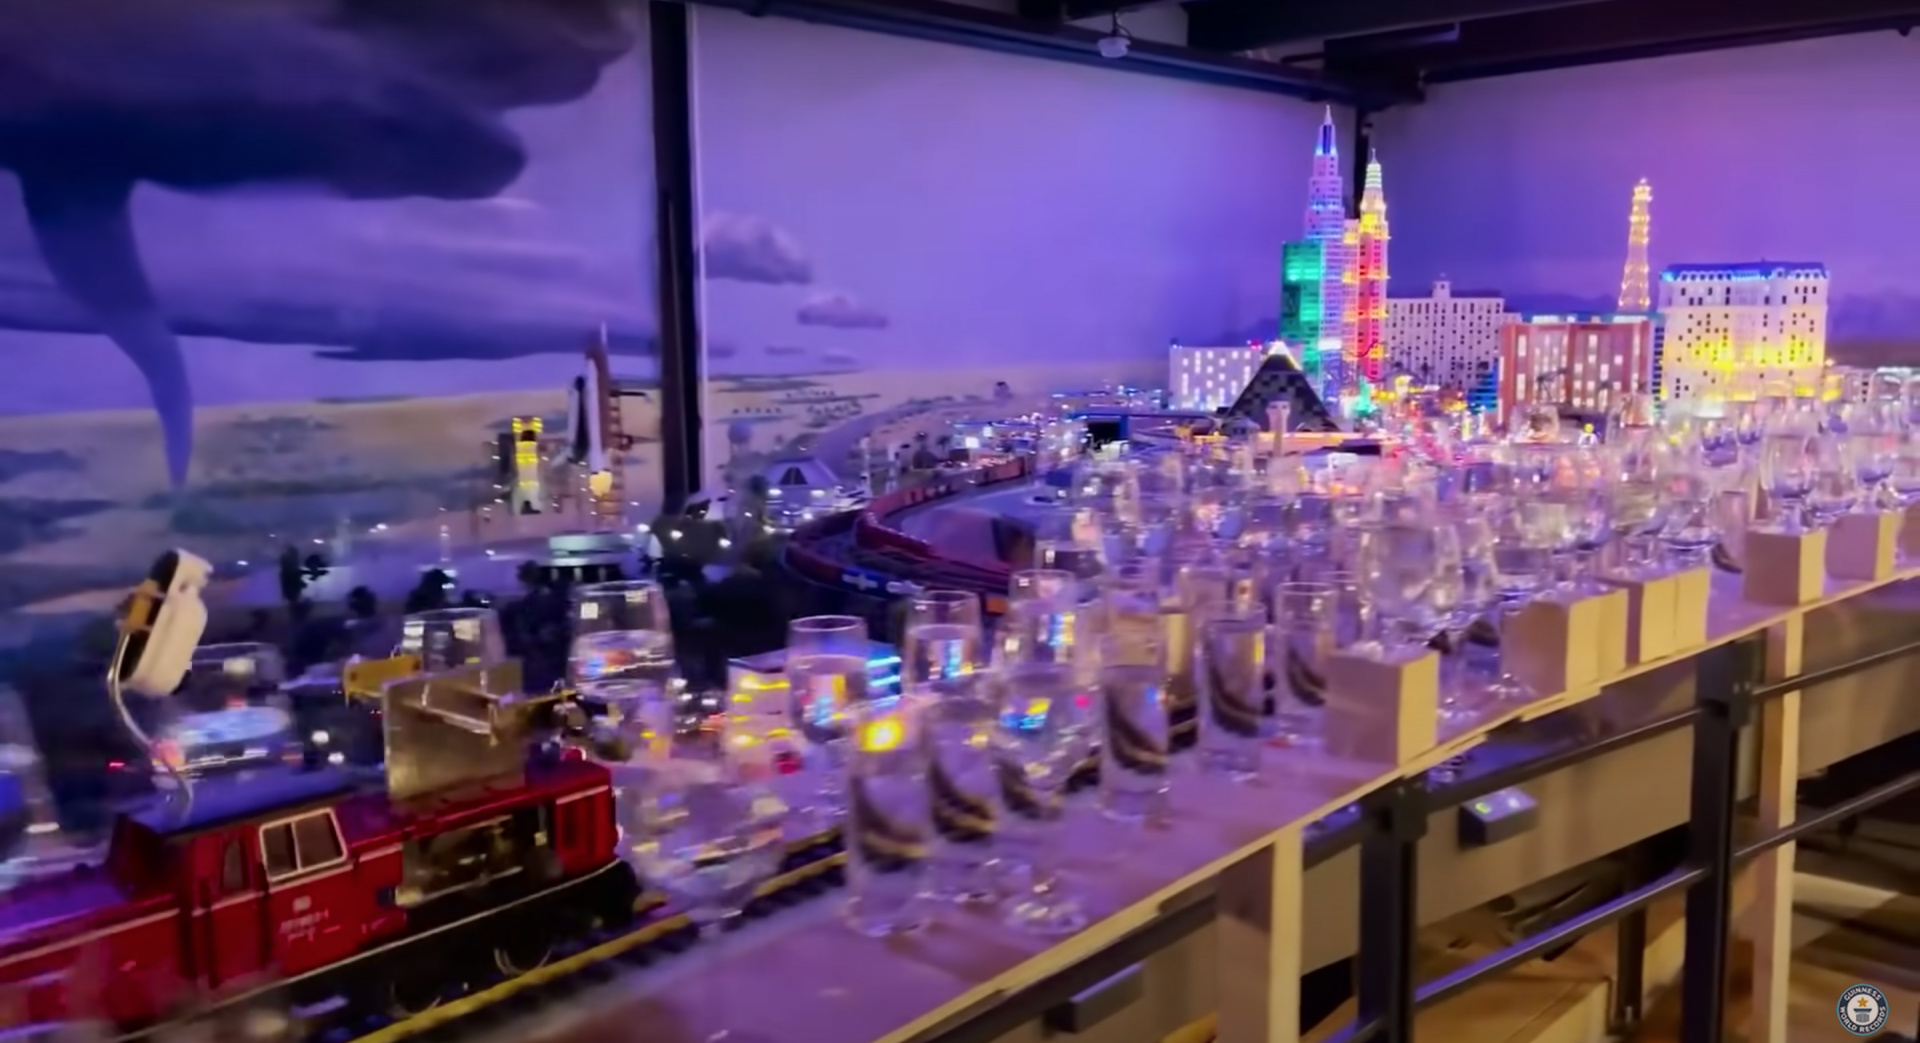 The Miniatur Wunderland museum in Germany has set a new world record for longest melody played by a model train, and the whole 8-mile-long song is amazing.